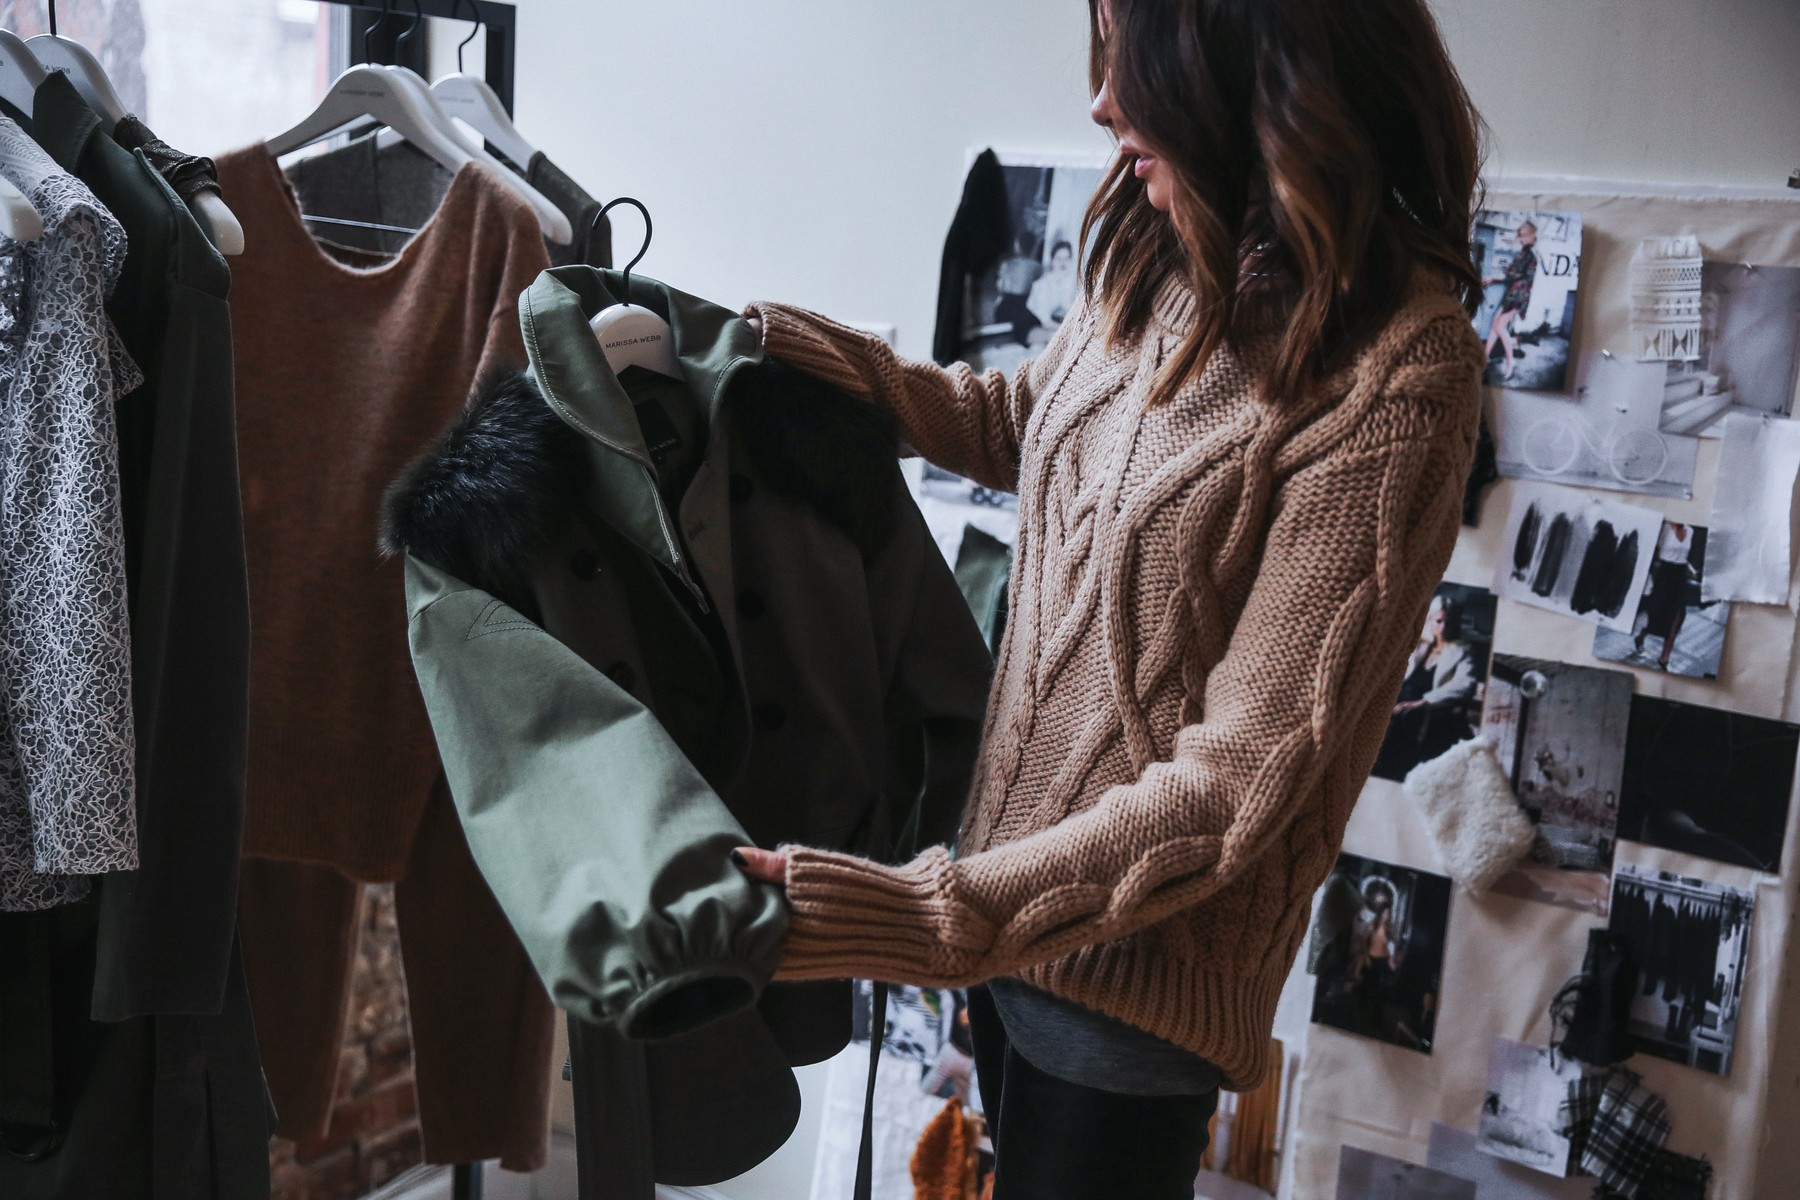 camel cable knit sweater and army green jacket with shearling